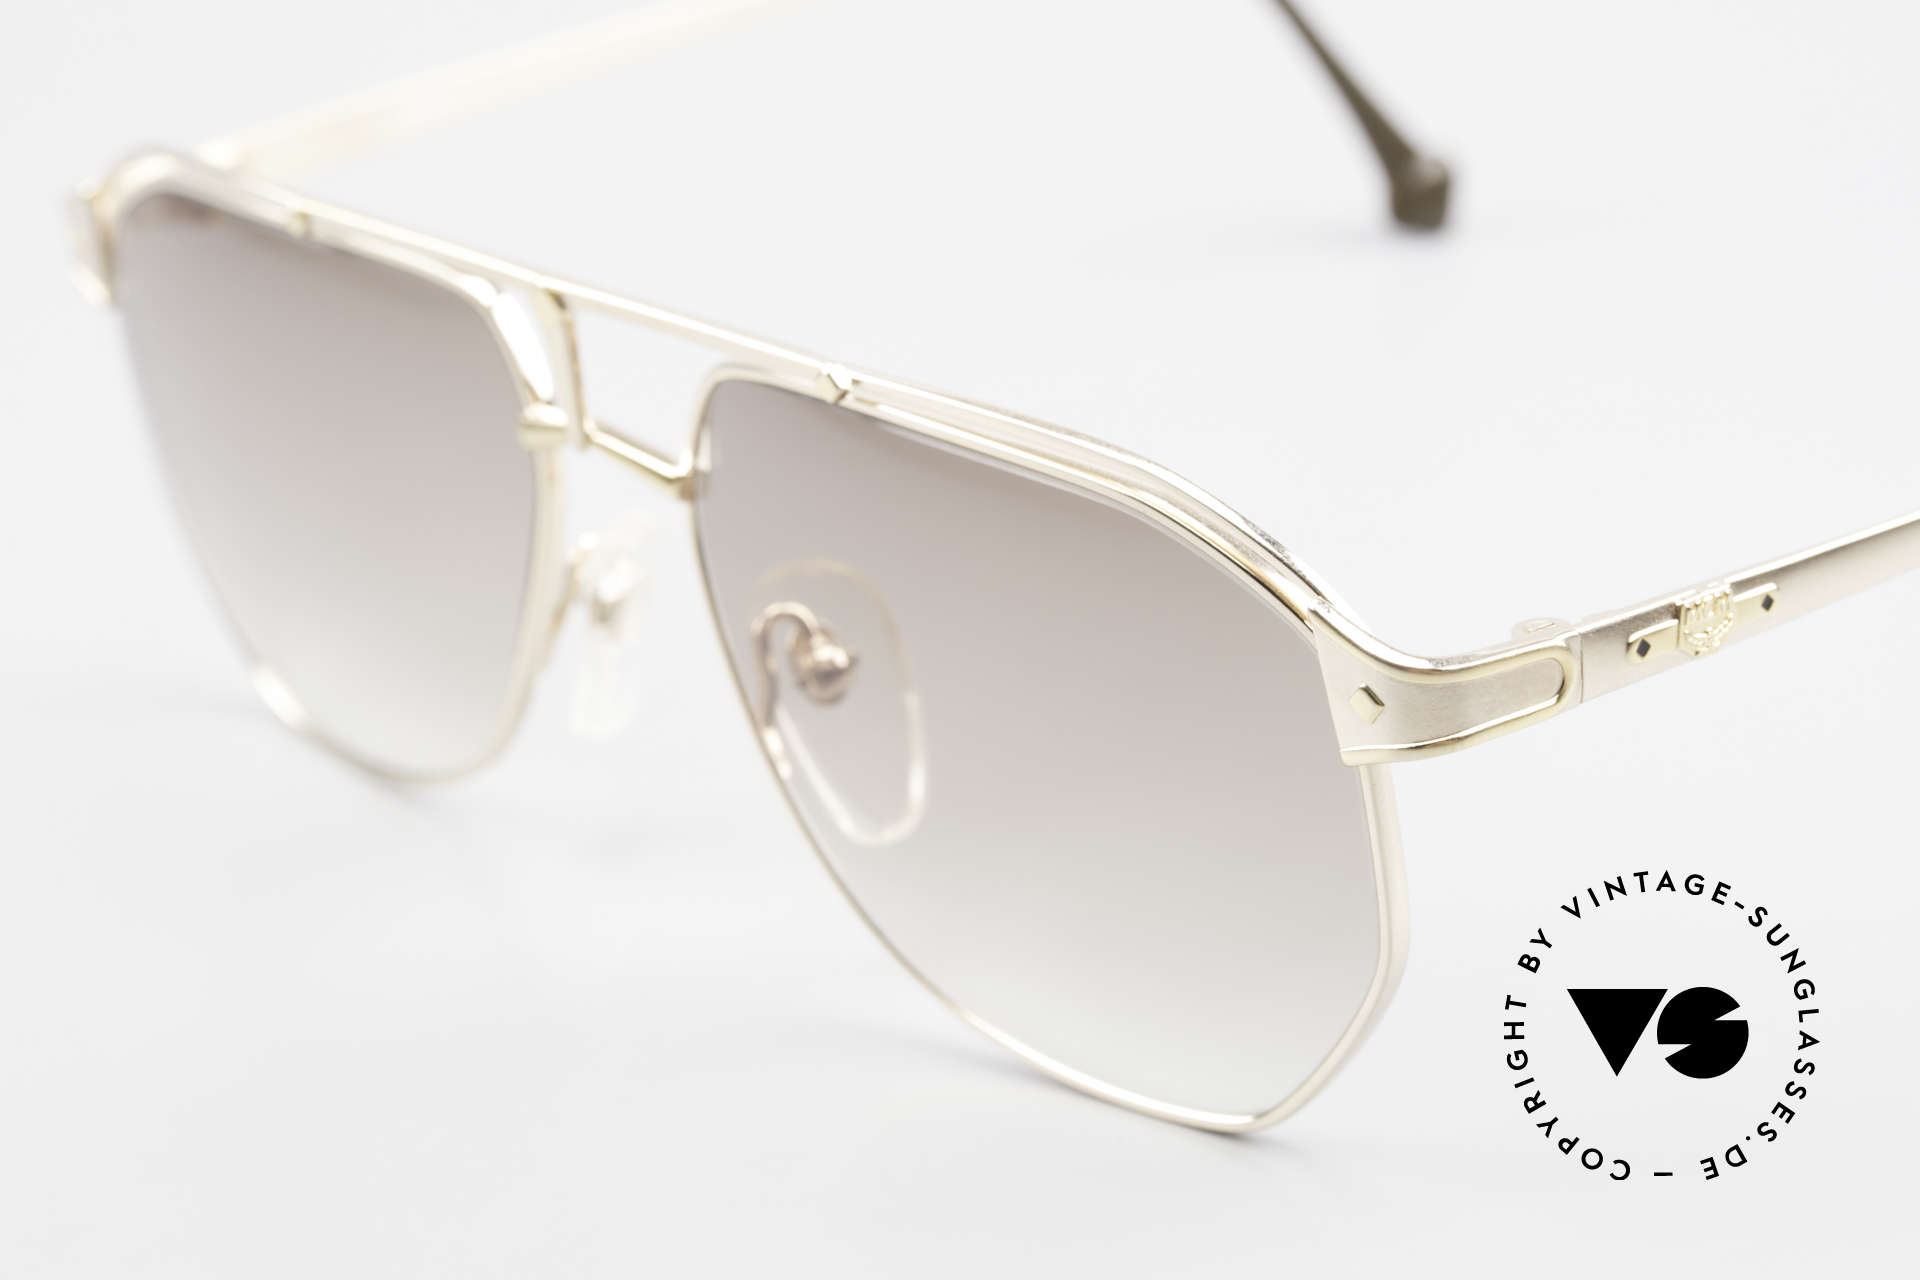 MCM München 6 Rare XL 90's Luxury Sunglasses, precious frame with serial number & 1st class quality, Made for Men